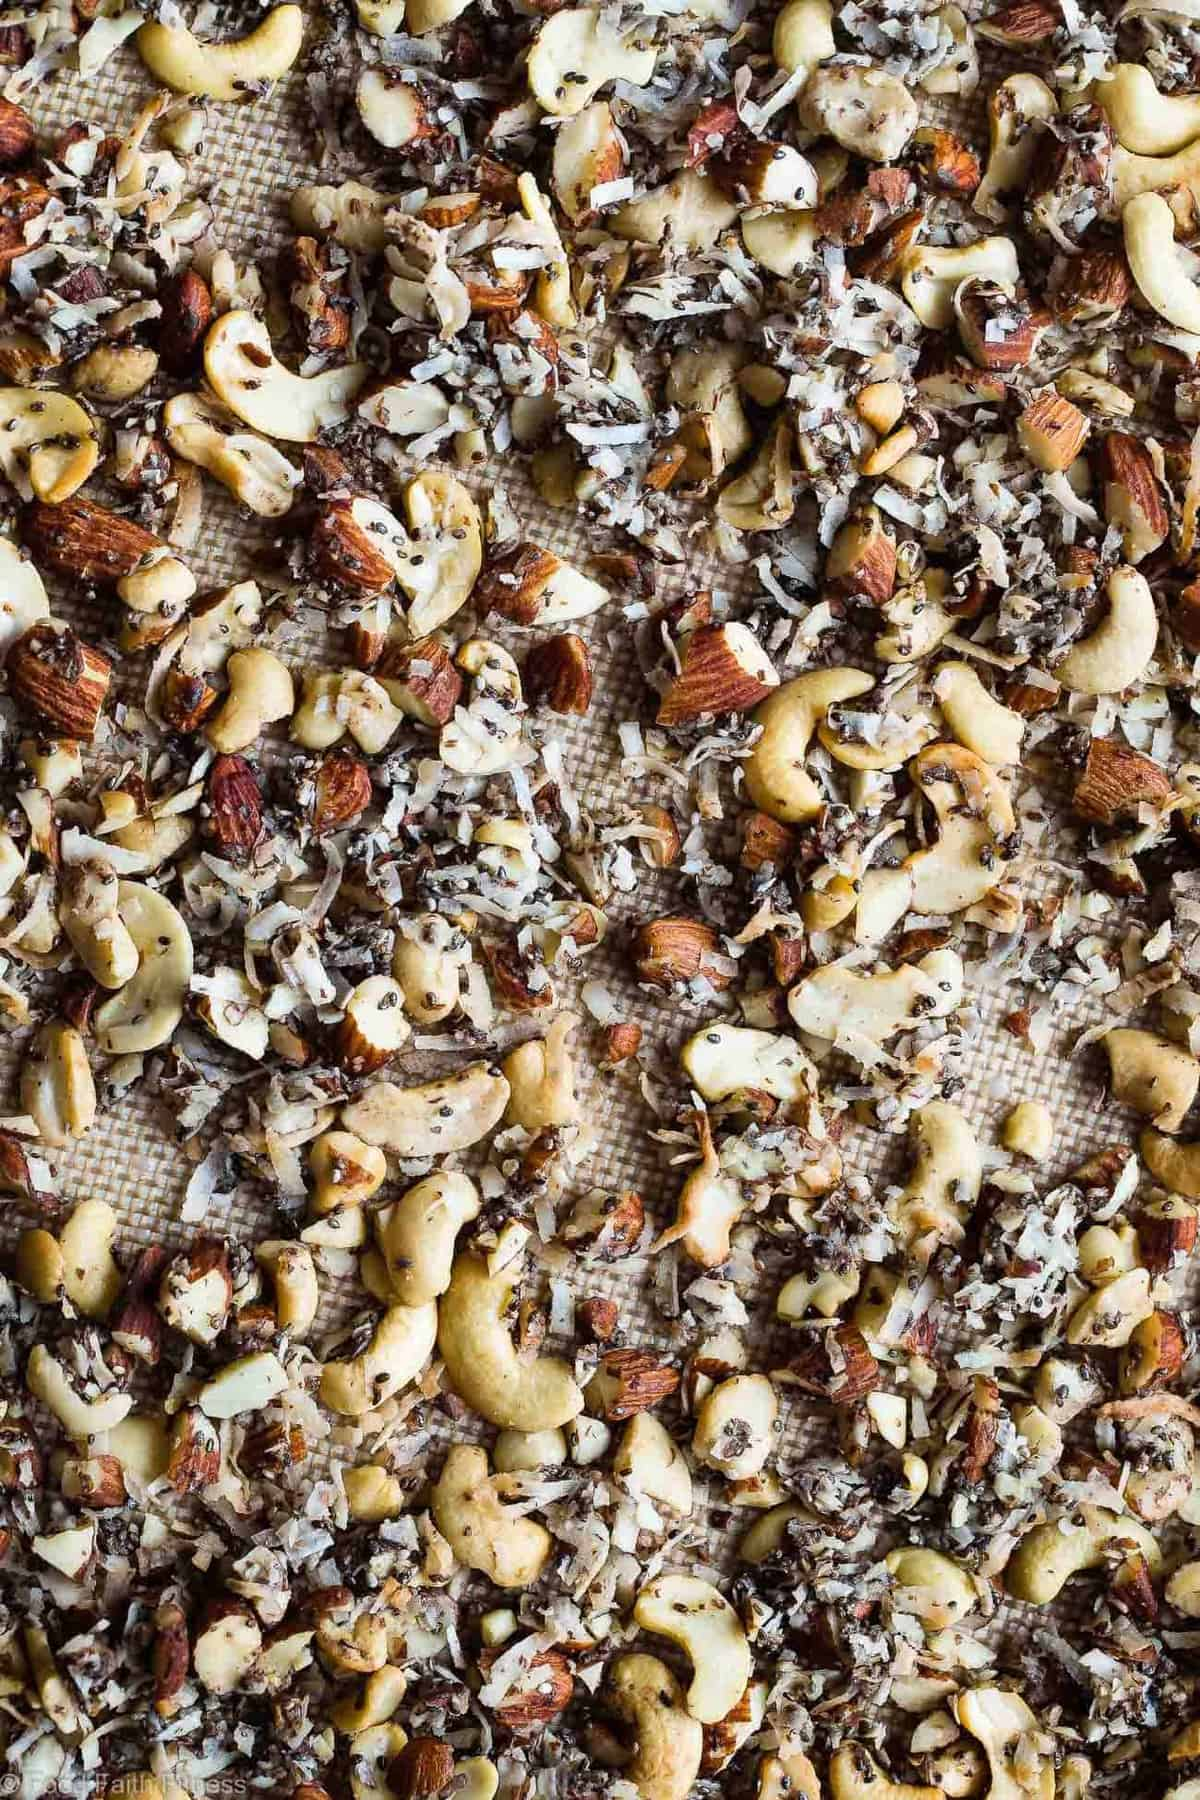 Coconut Cashew Grain Free Low Carb Keto Granola - SO crispy and crunchy that you'll never guess it's secretly healthy, low carb, gluten and  sugar free and paleo and vegan friendly! The perfect breakfast or snack that's great for meal prep! | #Foodfaithfitness | #Paleo #Vegan #Keto #Lowcarb #Healthy